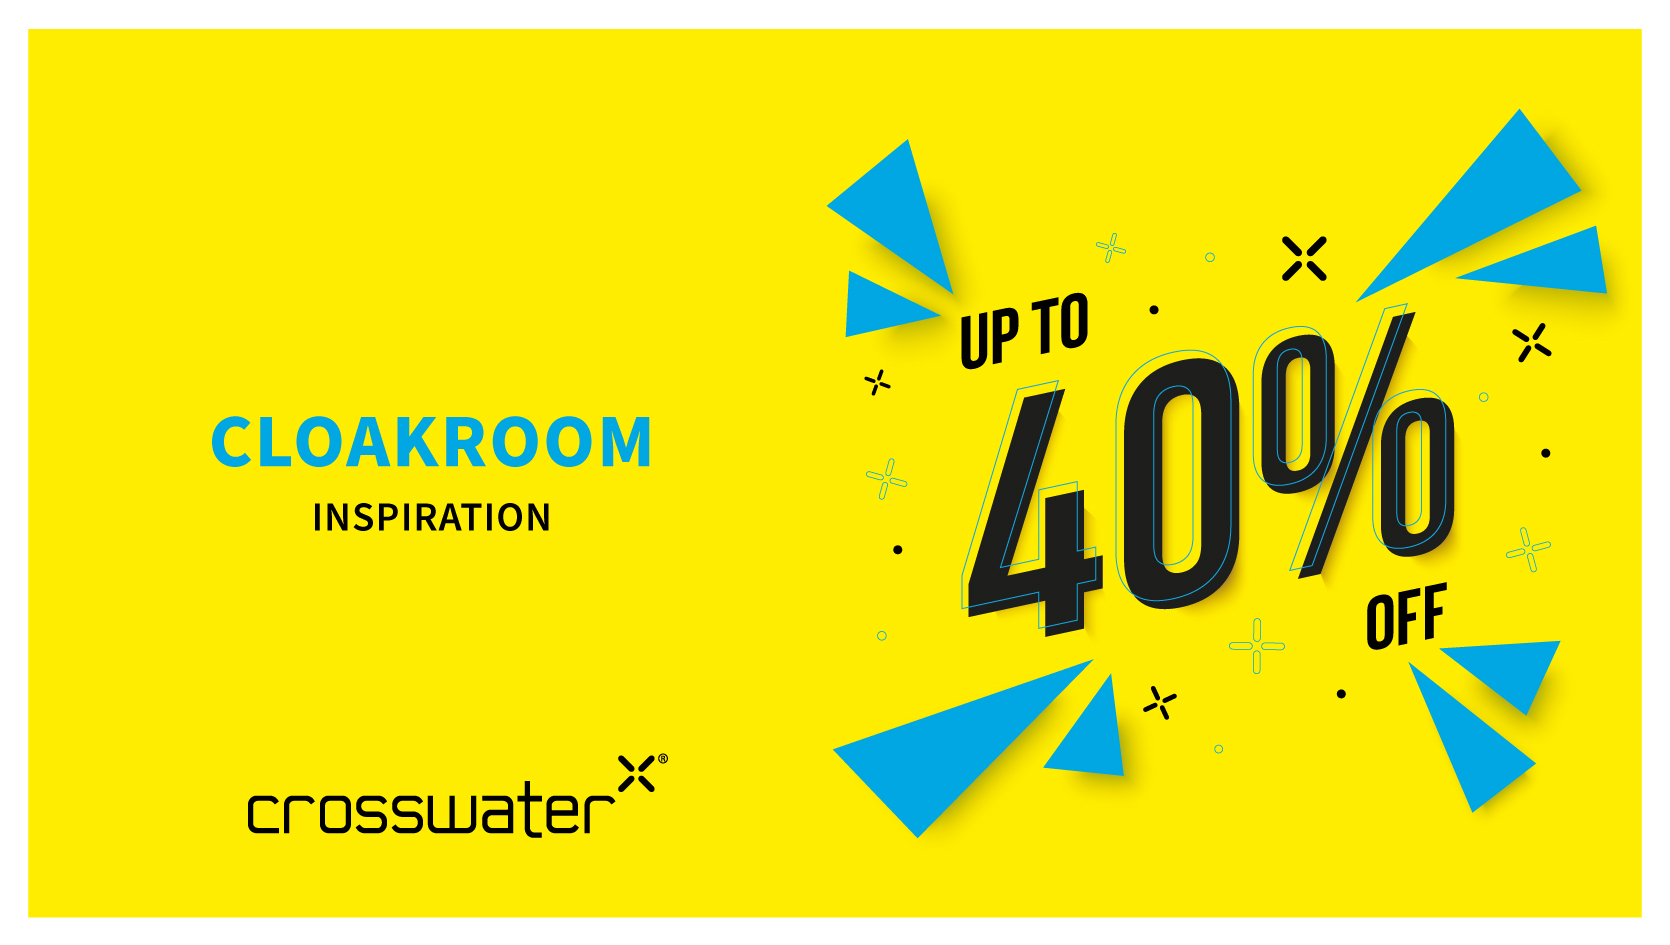 Cloakroom up to 40% off Banner